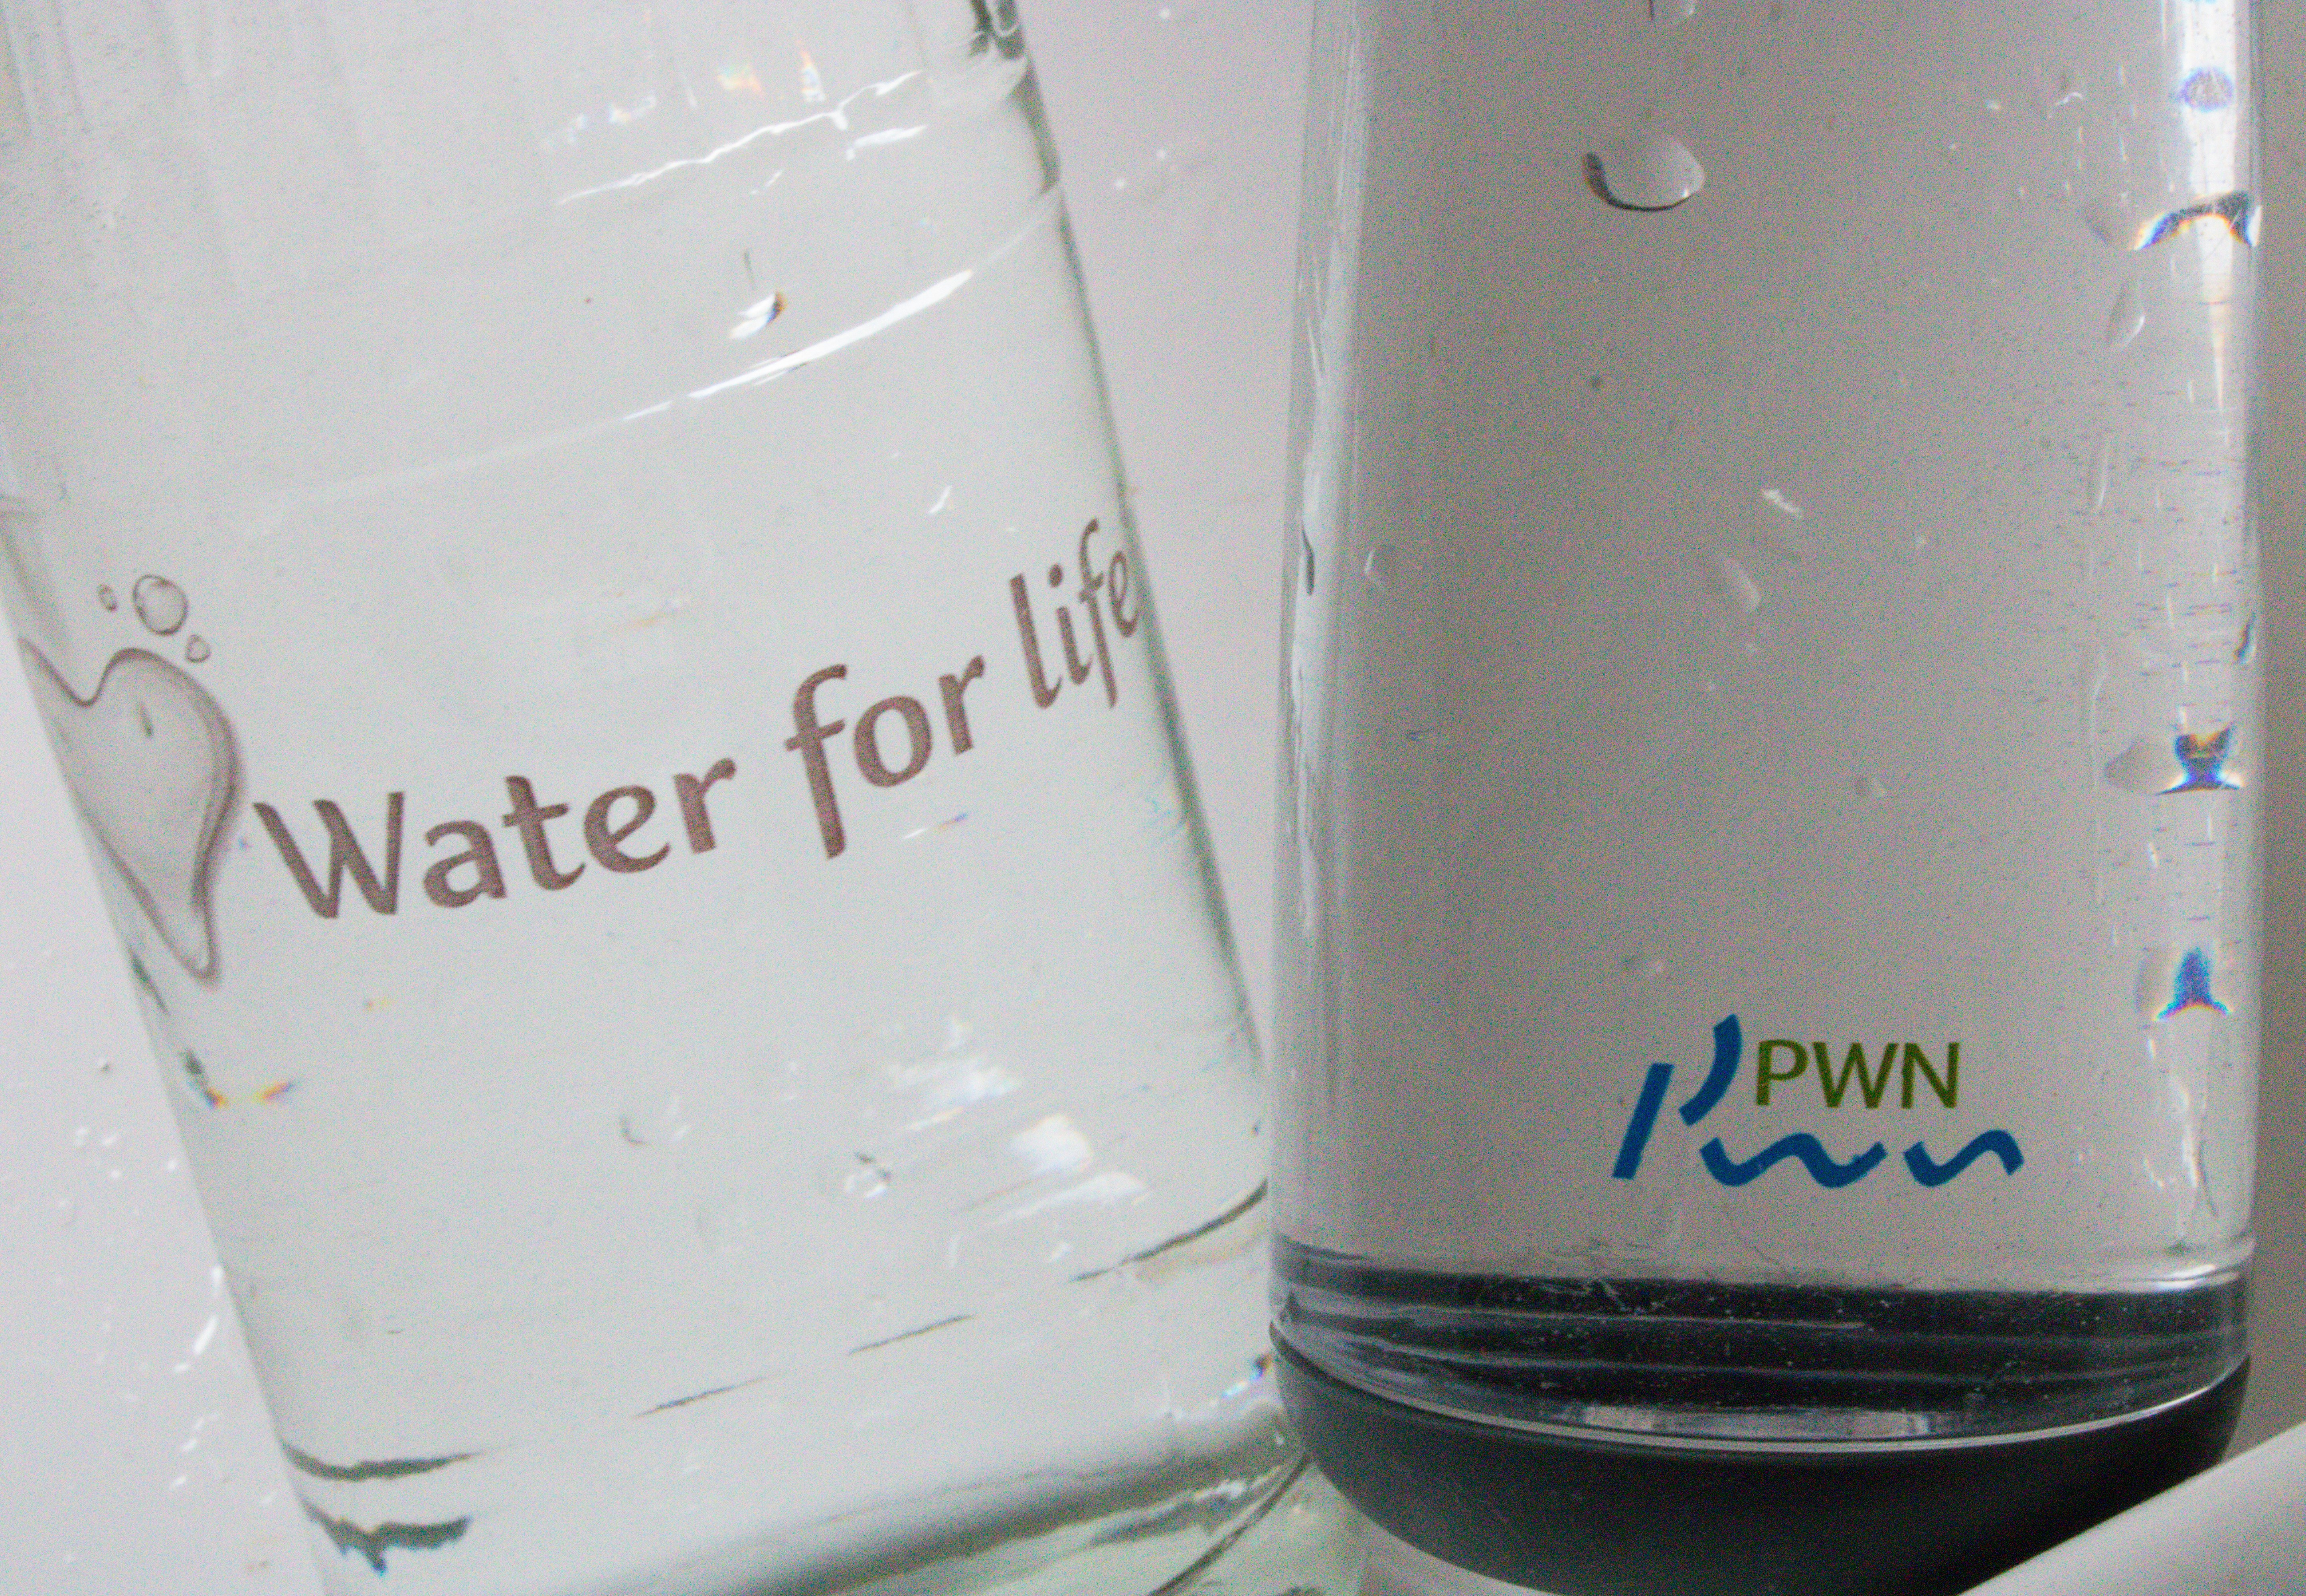 https://www.waterforlife.nl/files/visuals/PWN-en-WfL-partners.jpg